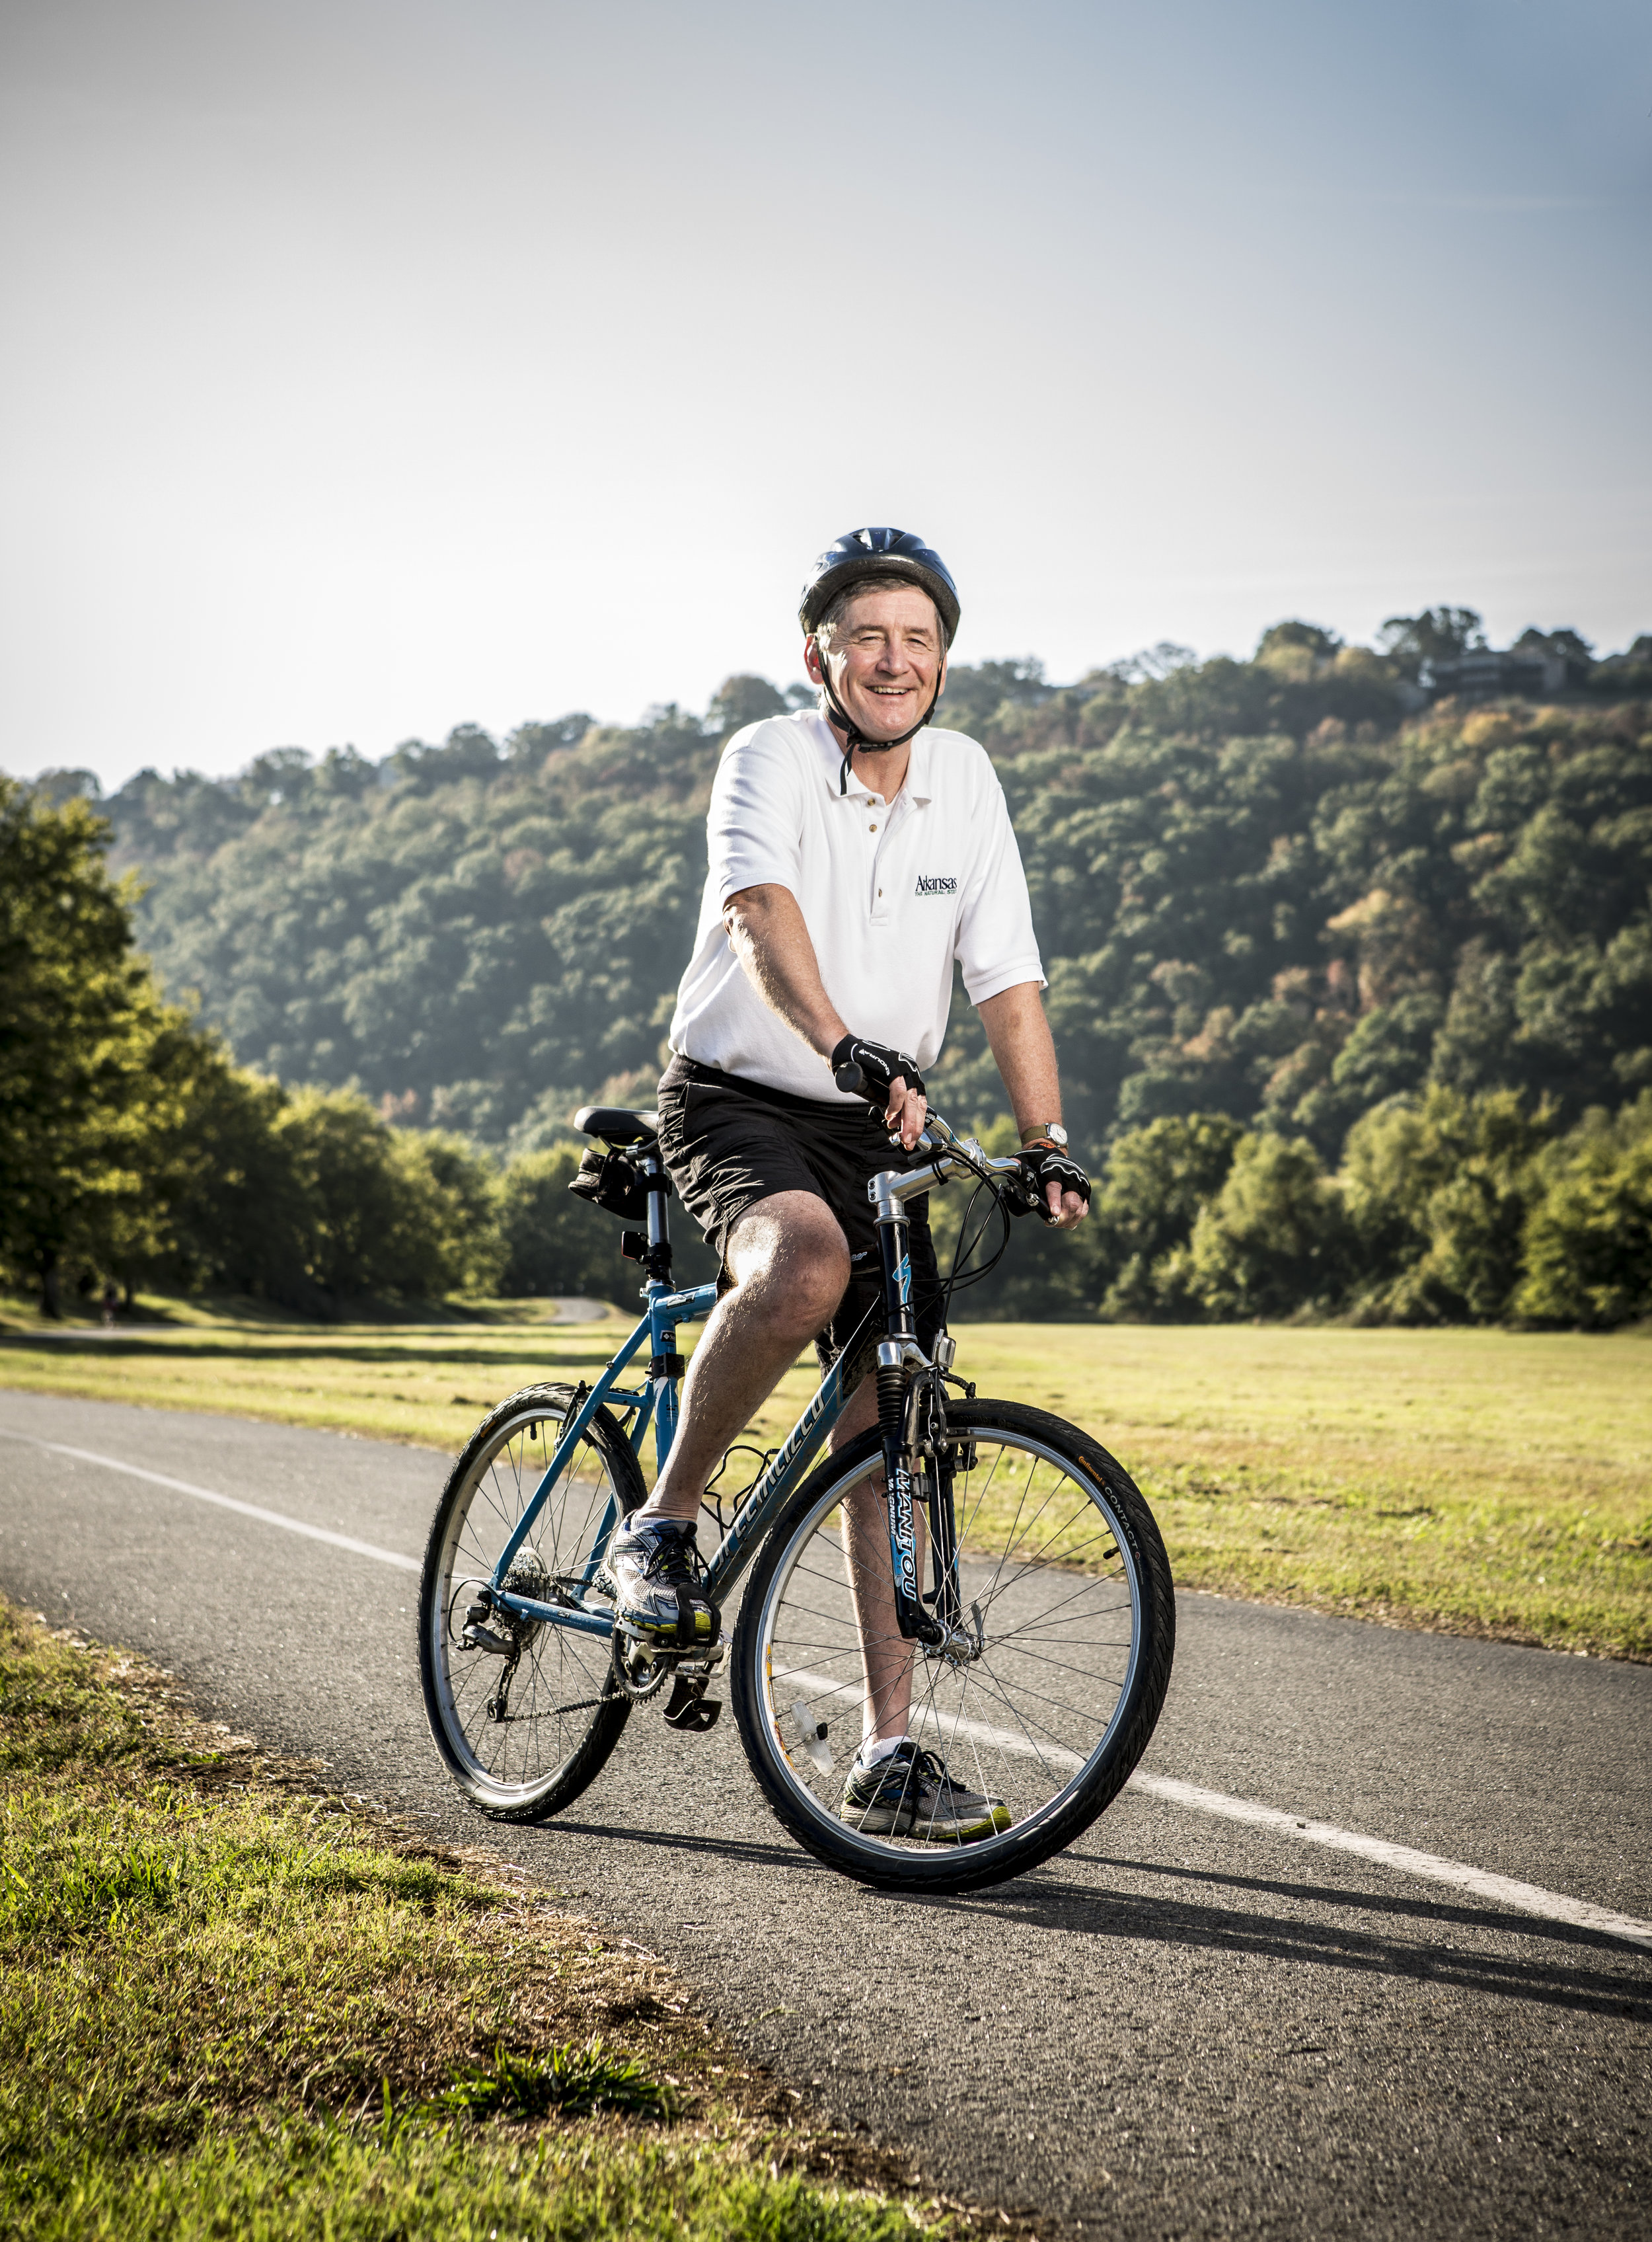 Arkansas Tourism Director Joe David Rice gets some fresh air on his bike at Two Rivers Park in Little Rock.